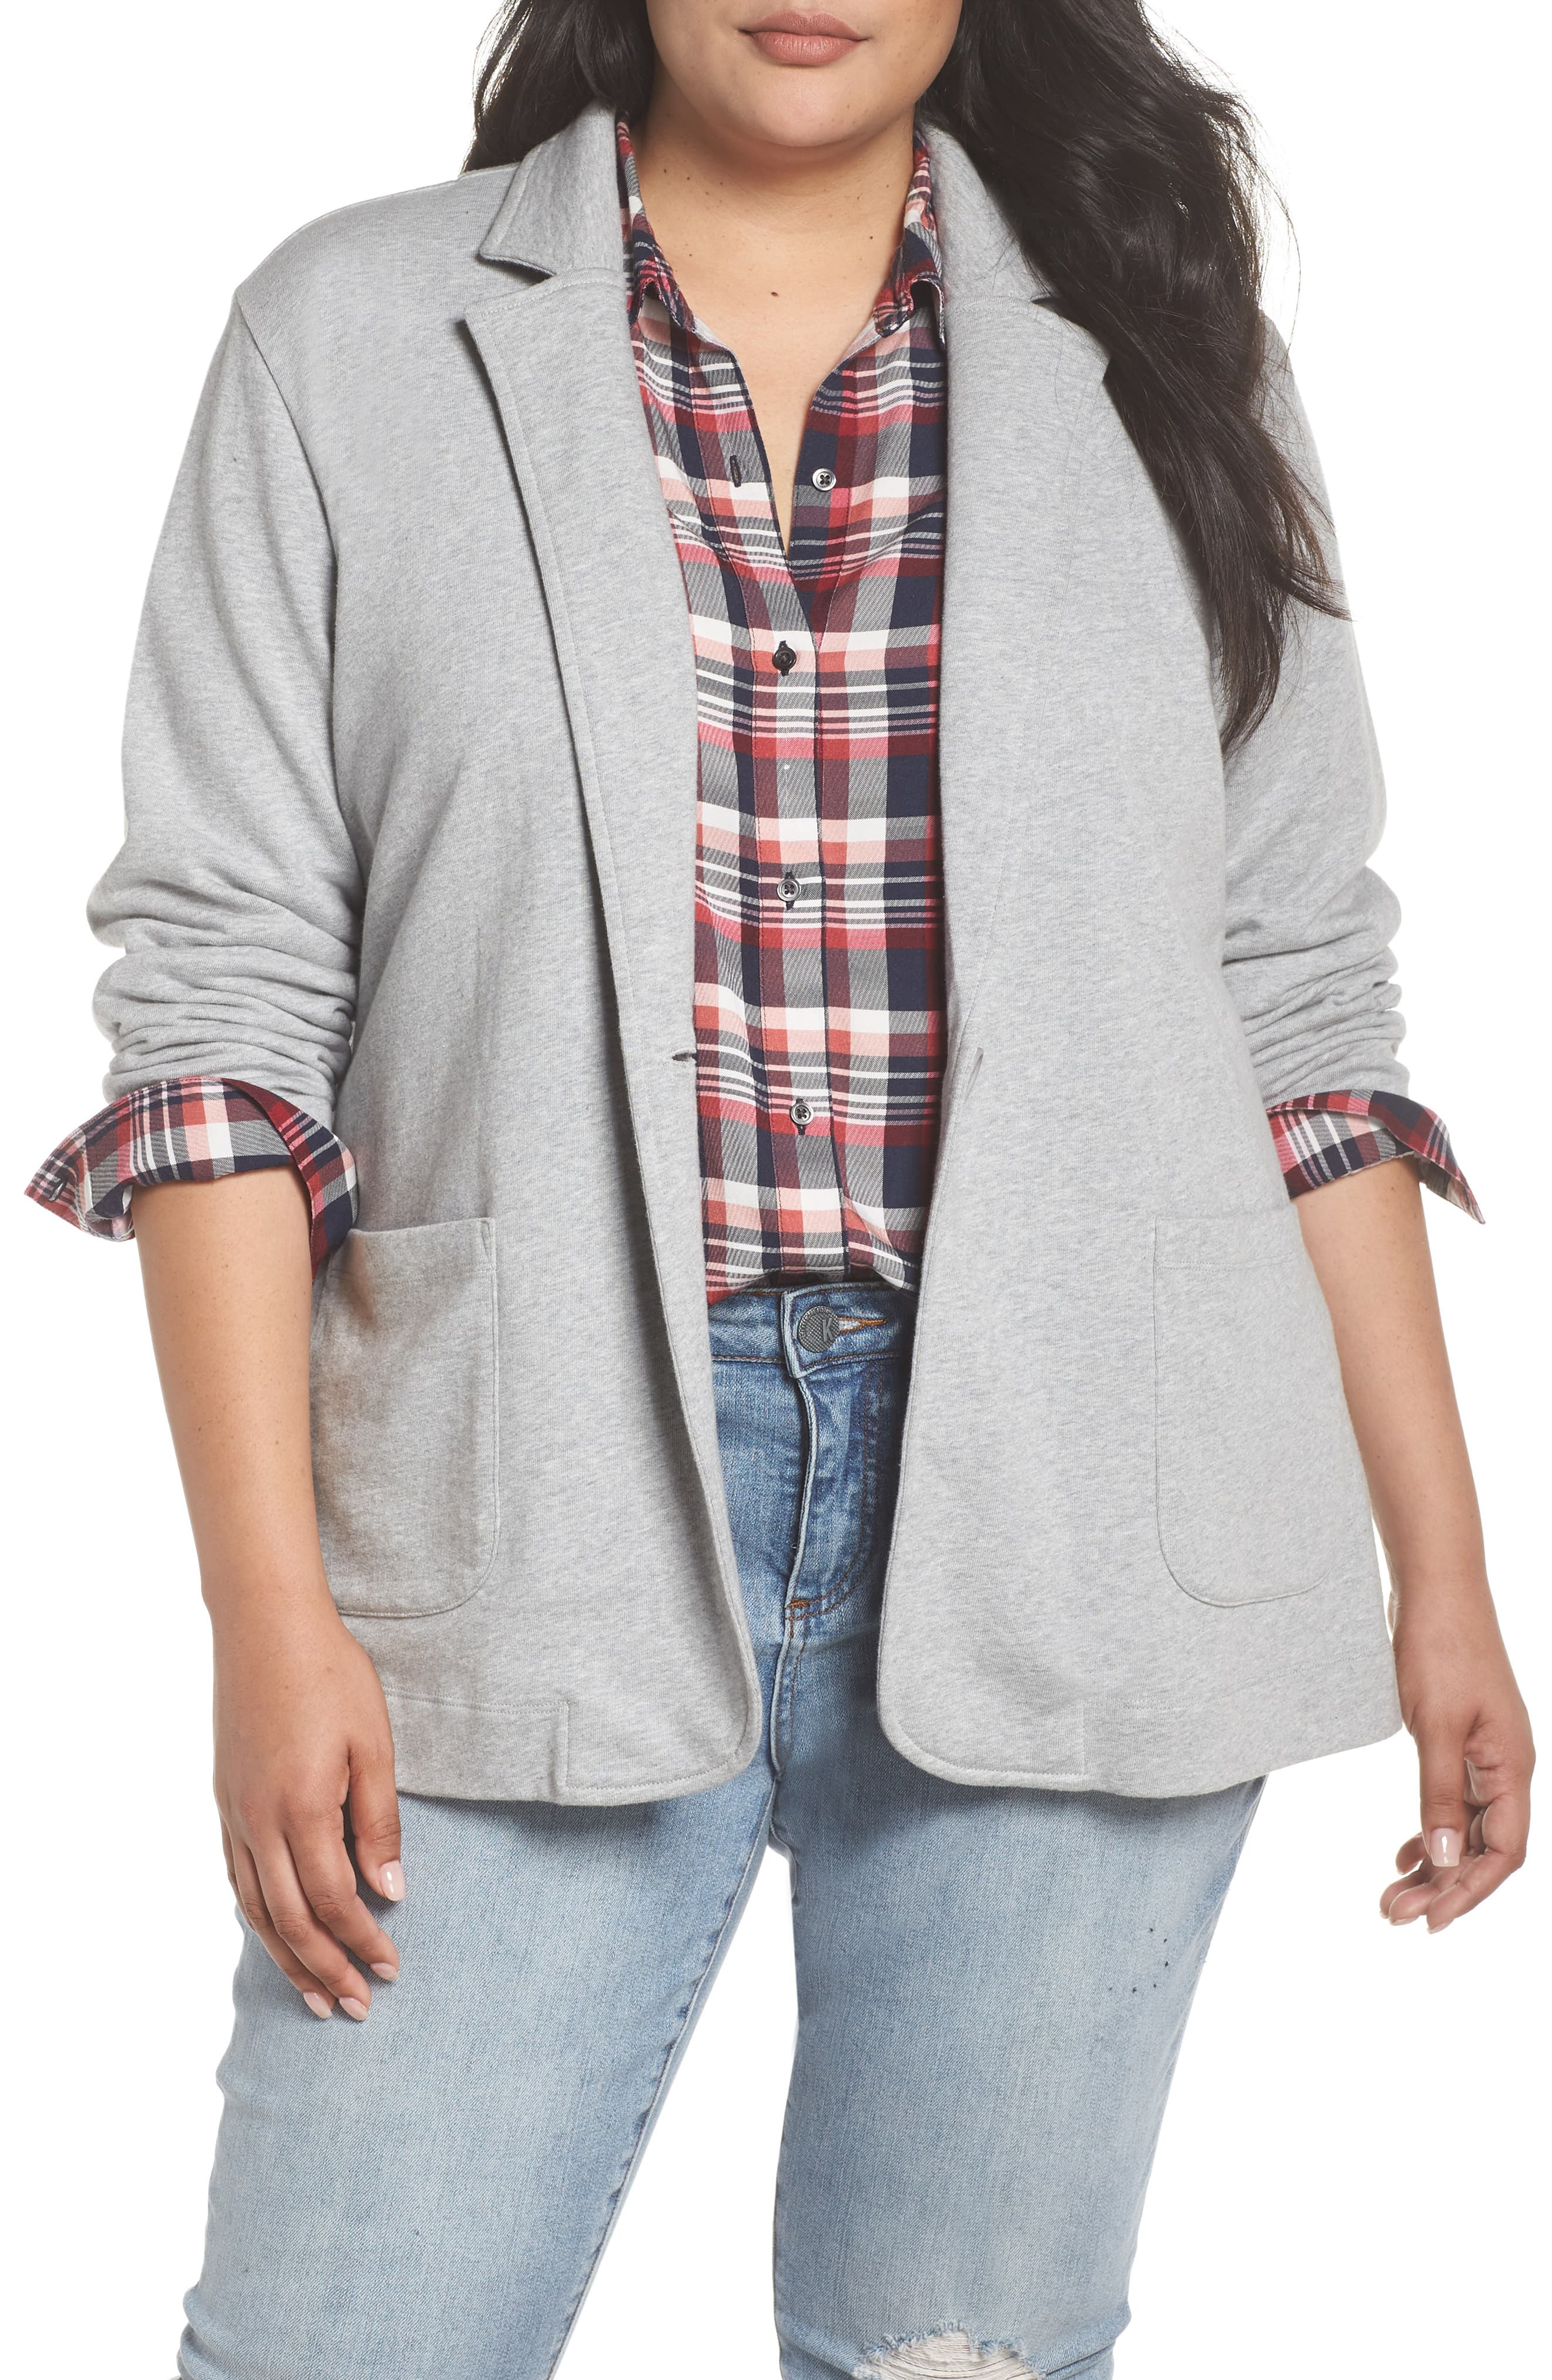 bebef523e Plus Size Women's Caslon Double Pocket Knit Blazer, Size 3X - Grey Knit  Blazer